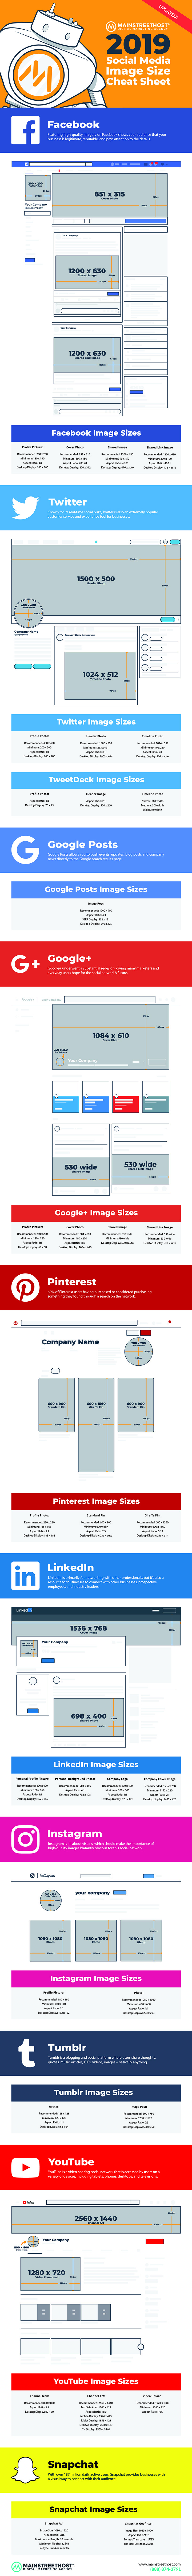 2019 Social Media Image Dimensions [Cheat Sheet]